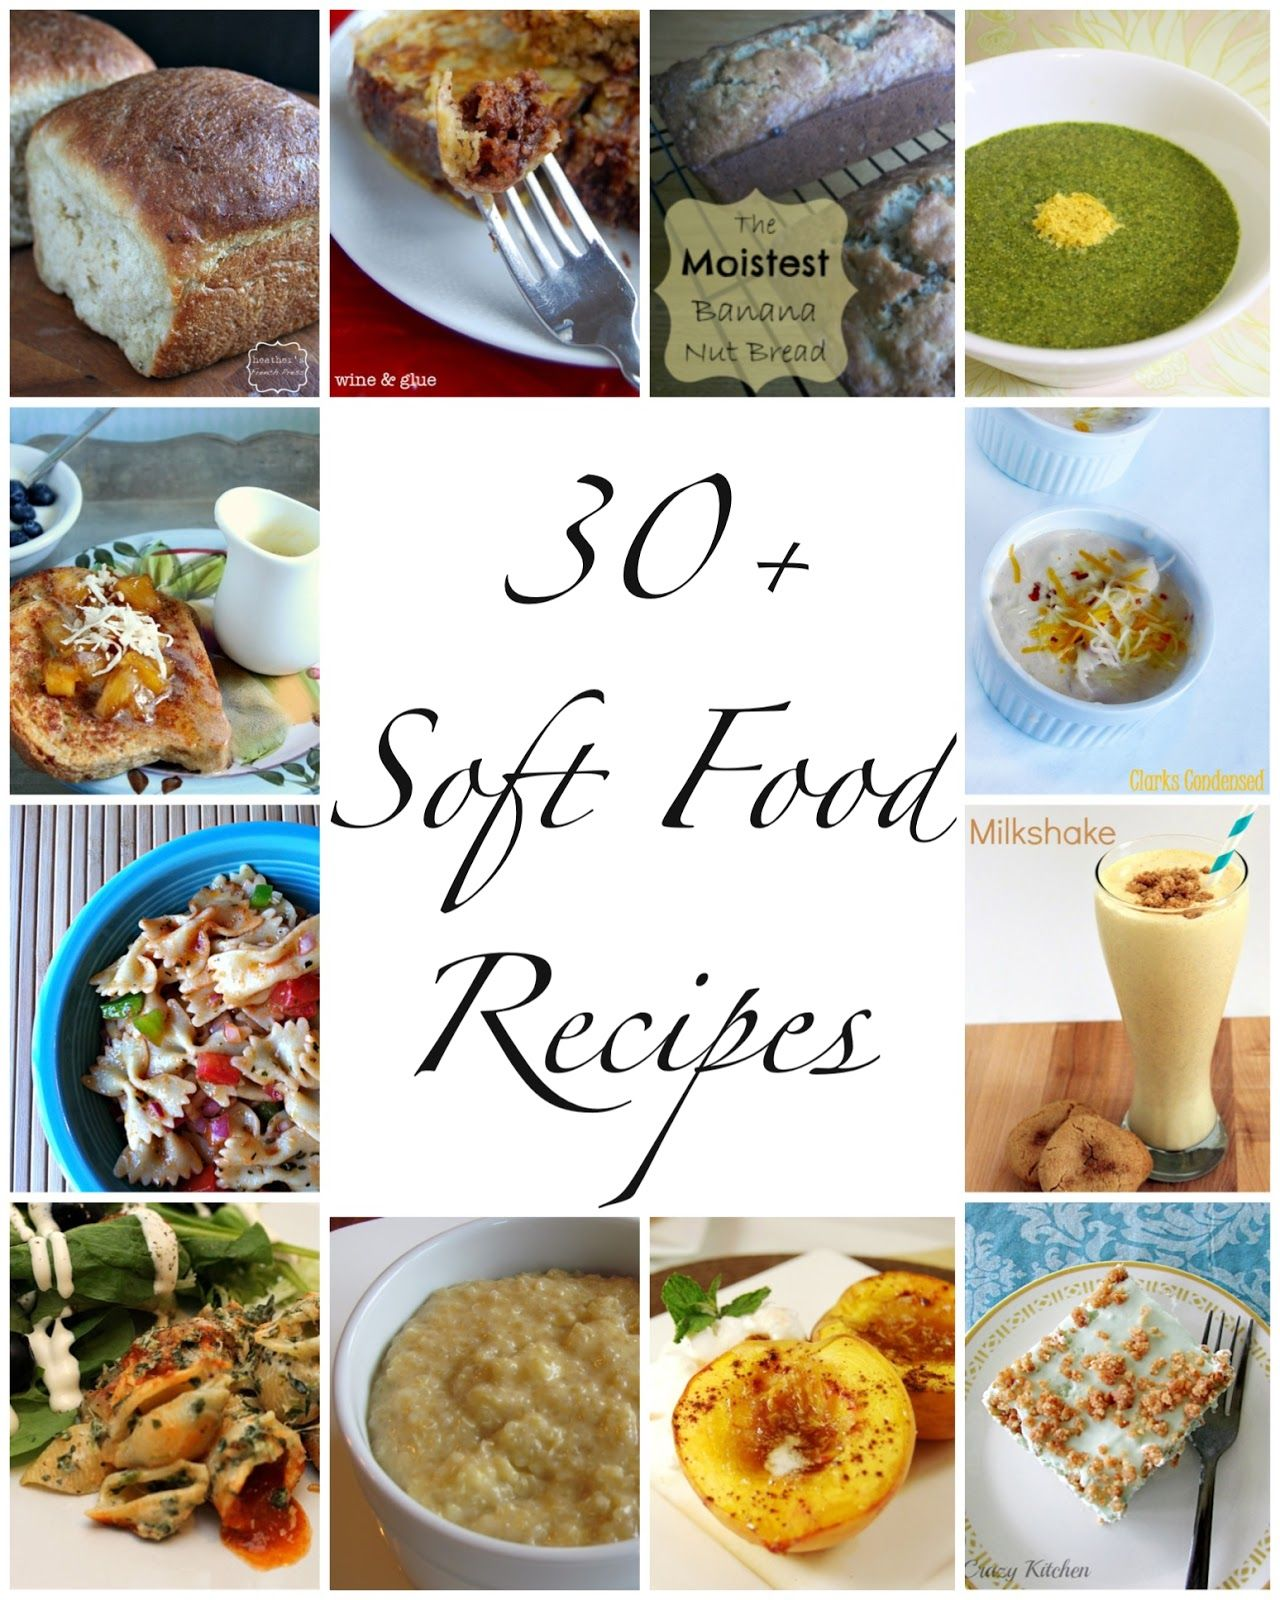 Bariatric Surgery Soft Food Recipes